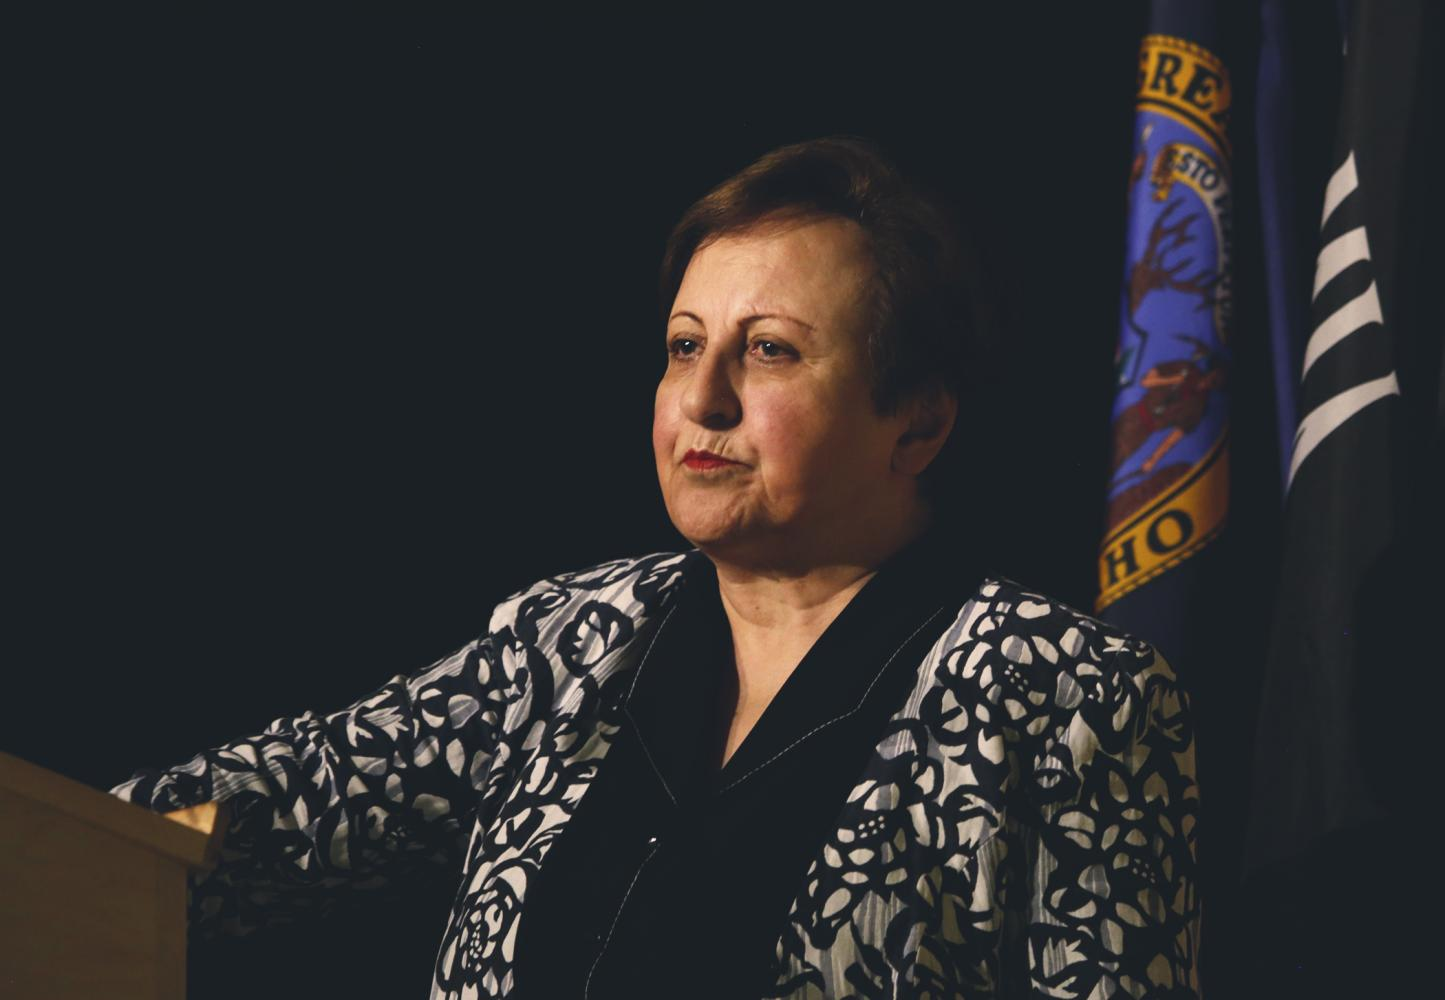 Iranian lawyer, human rights activist, and former judge Shirin Ebadi speaks on her vision to prevent war and promote equal rights in our world during her symposium at the University of Idaho Bruce M. Pitman Center.